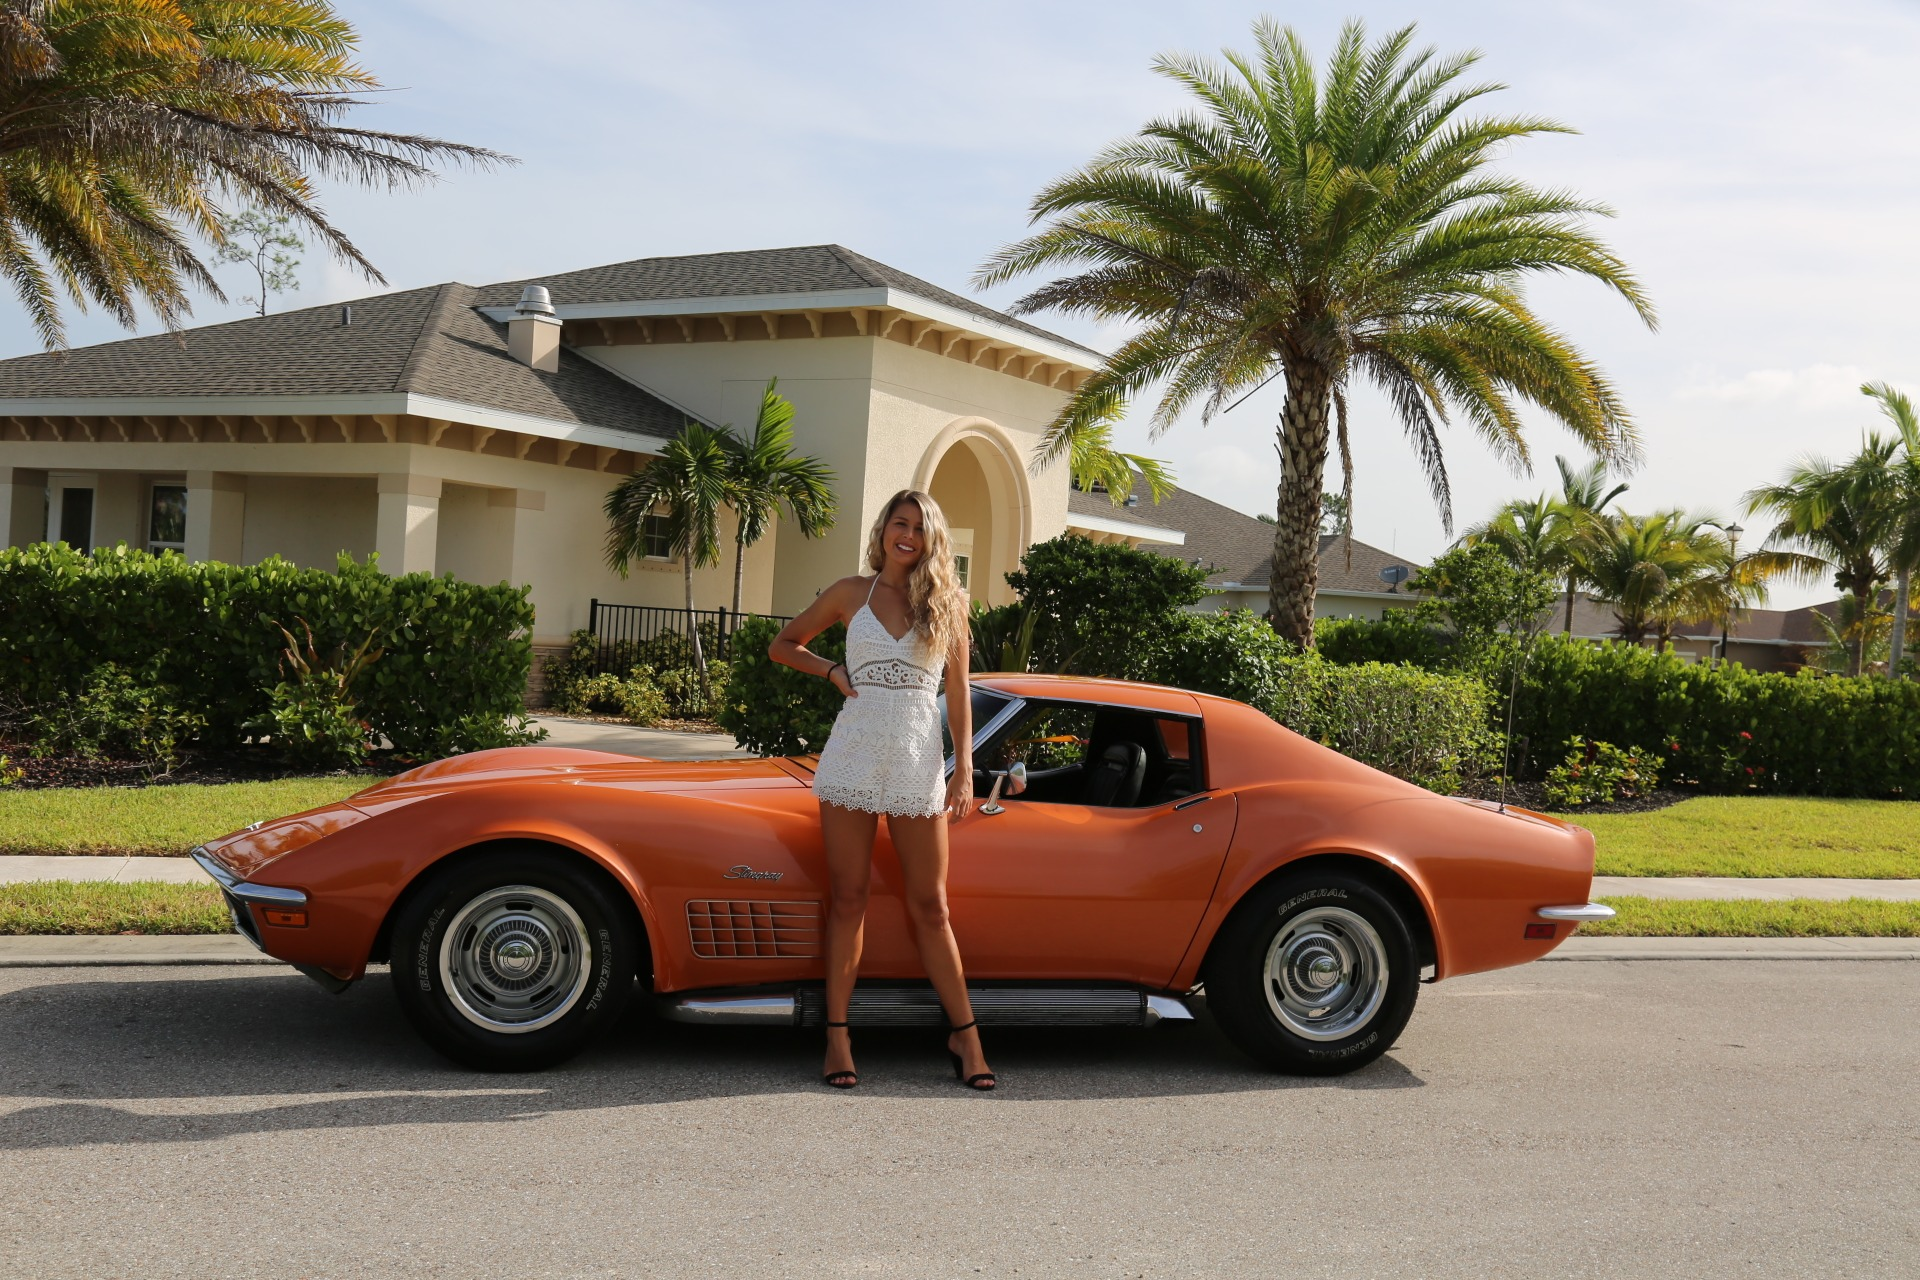 Used 1971 Chevy Corvette Removable rear Glass and T Top 4 speed for sale Sold at Muscle Cars for Sale Inc. in Fort Myers FL 33912 2